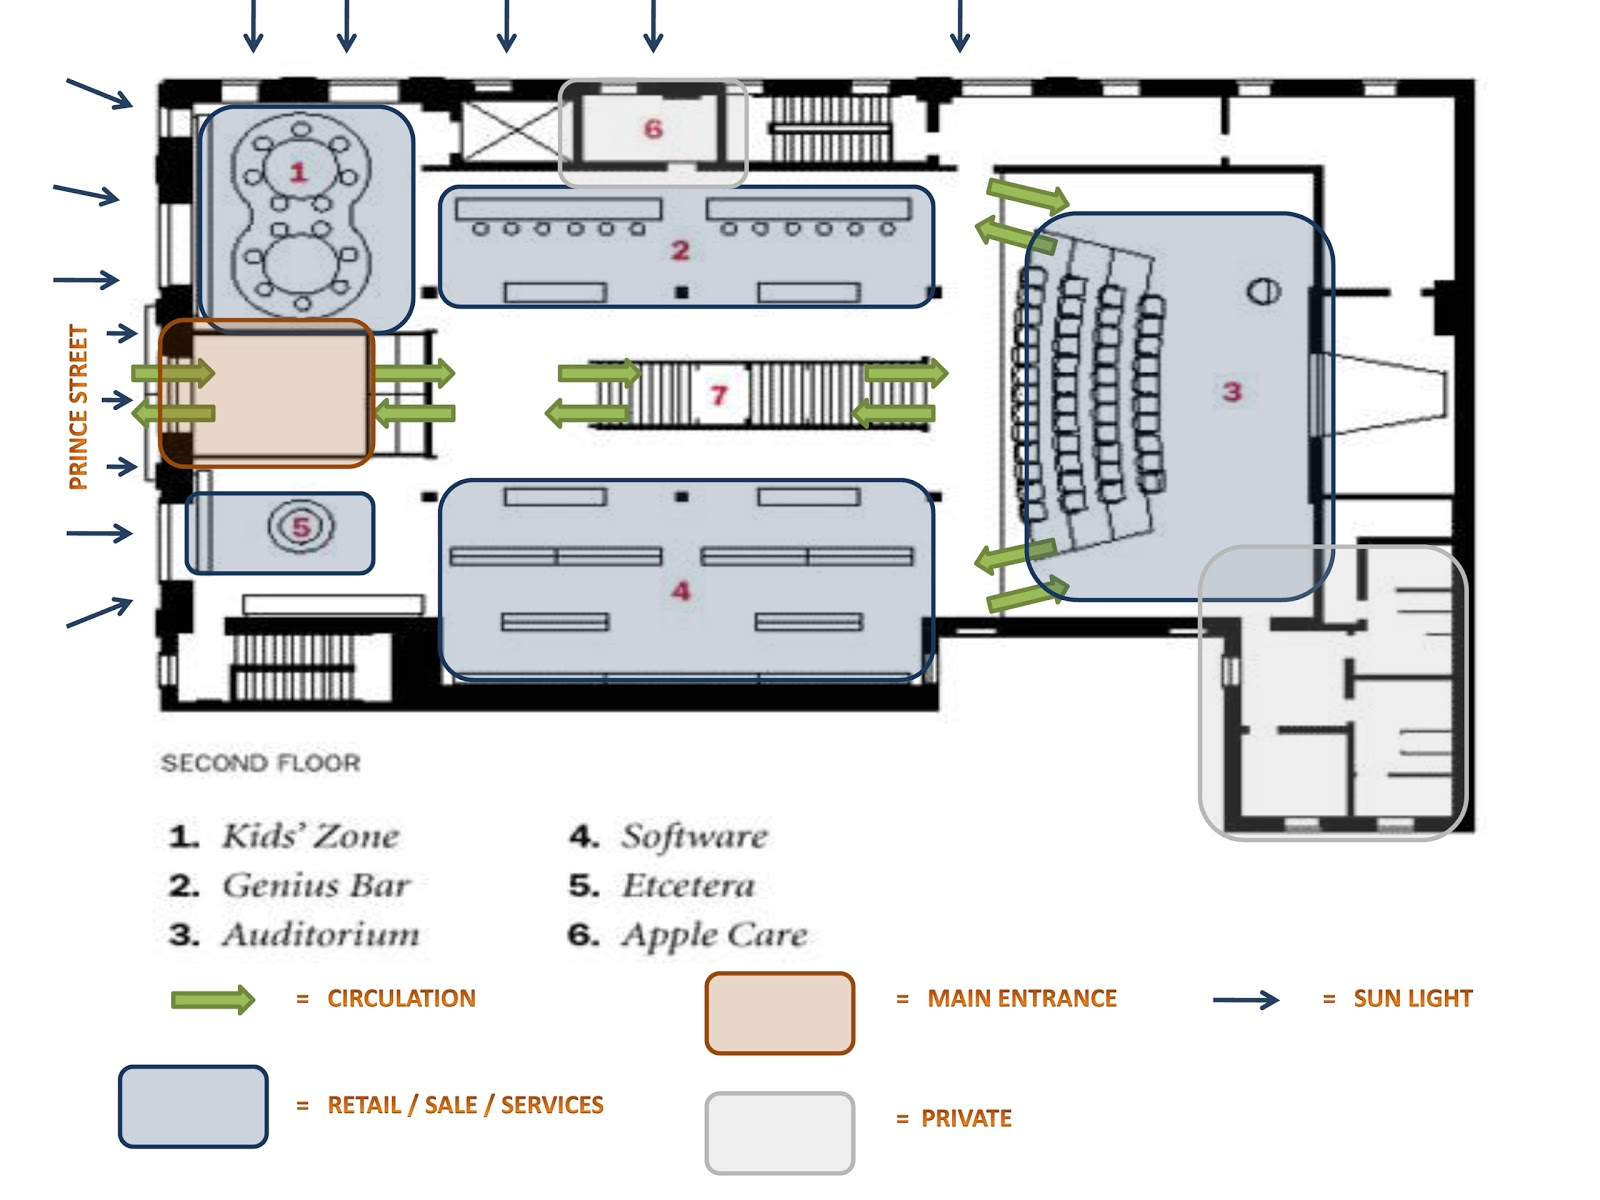 Studio fc apple store in soho part 2 plan section for Store building plans